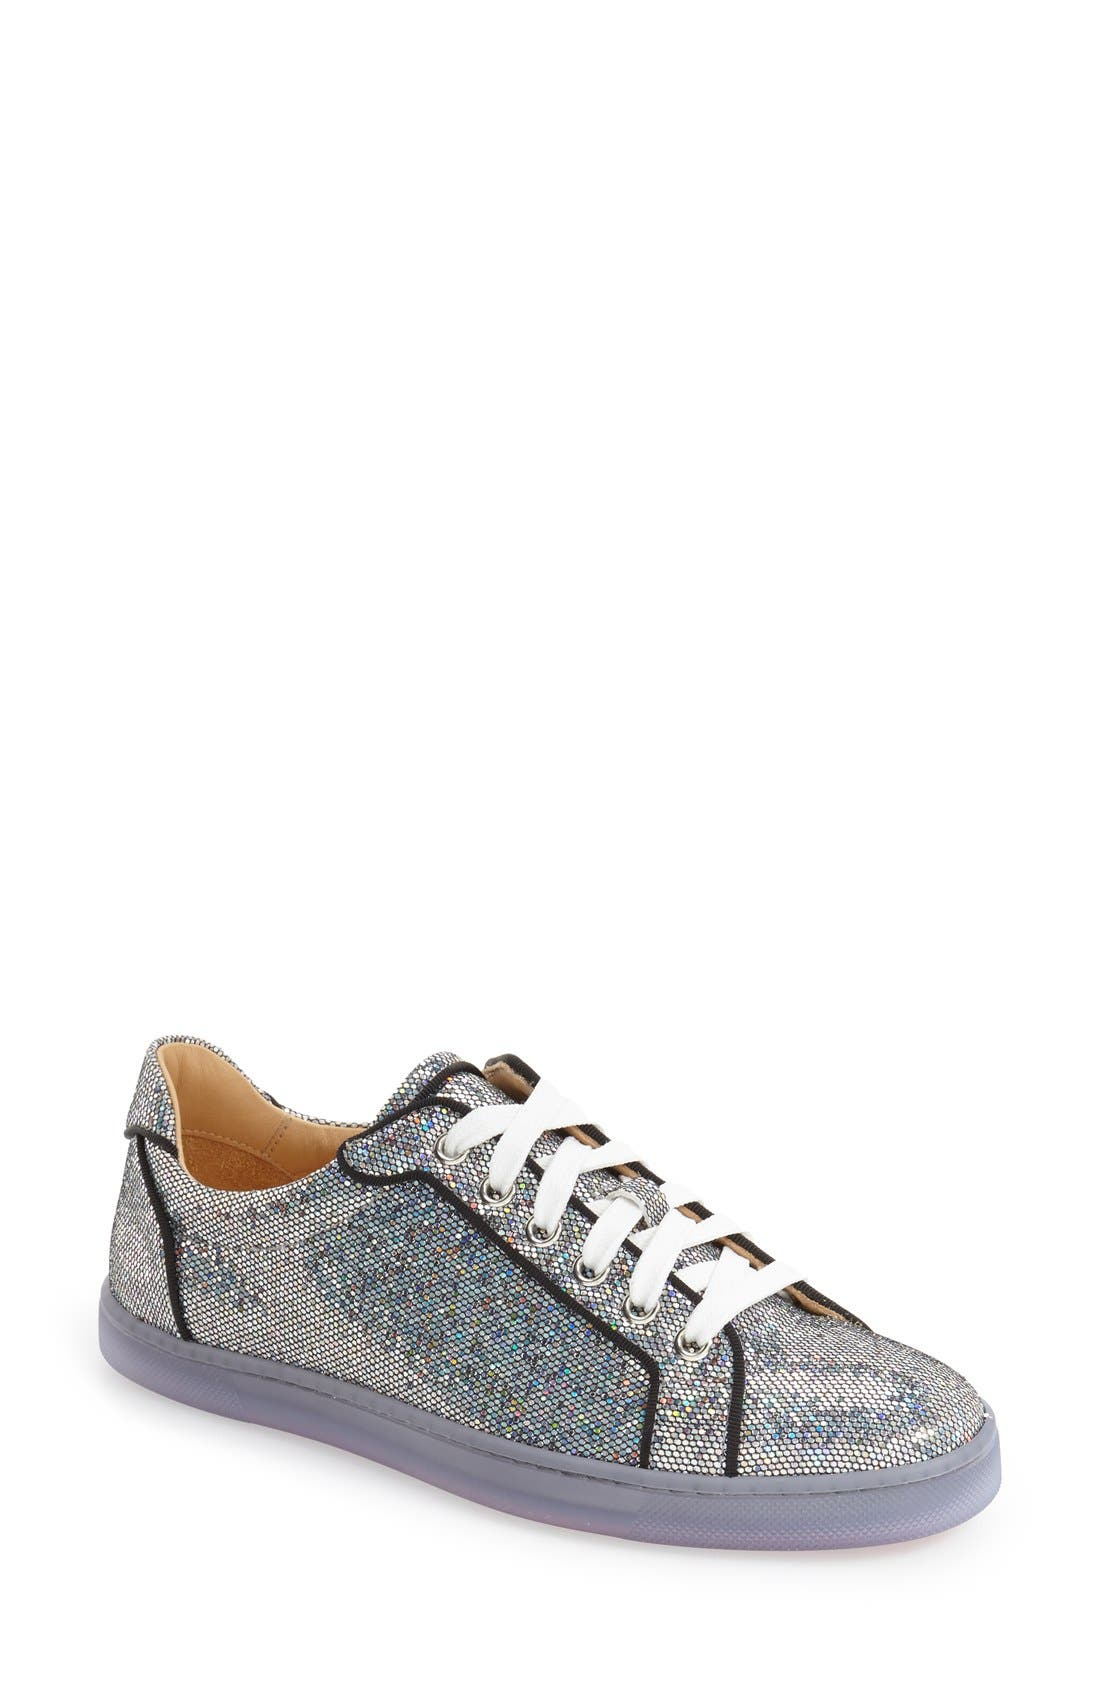 christian louboutin sequin sneakers